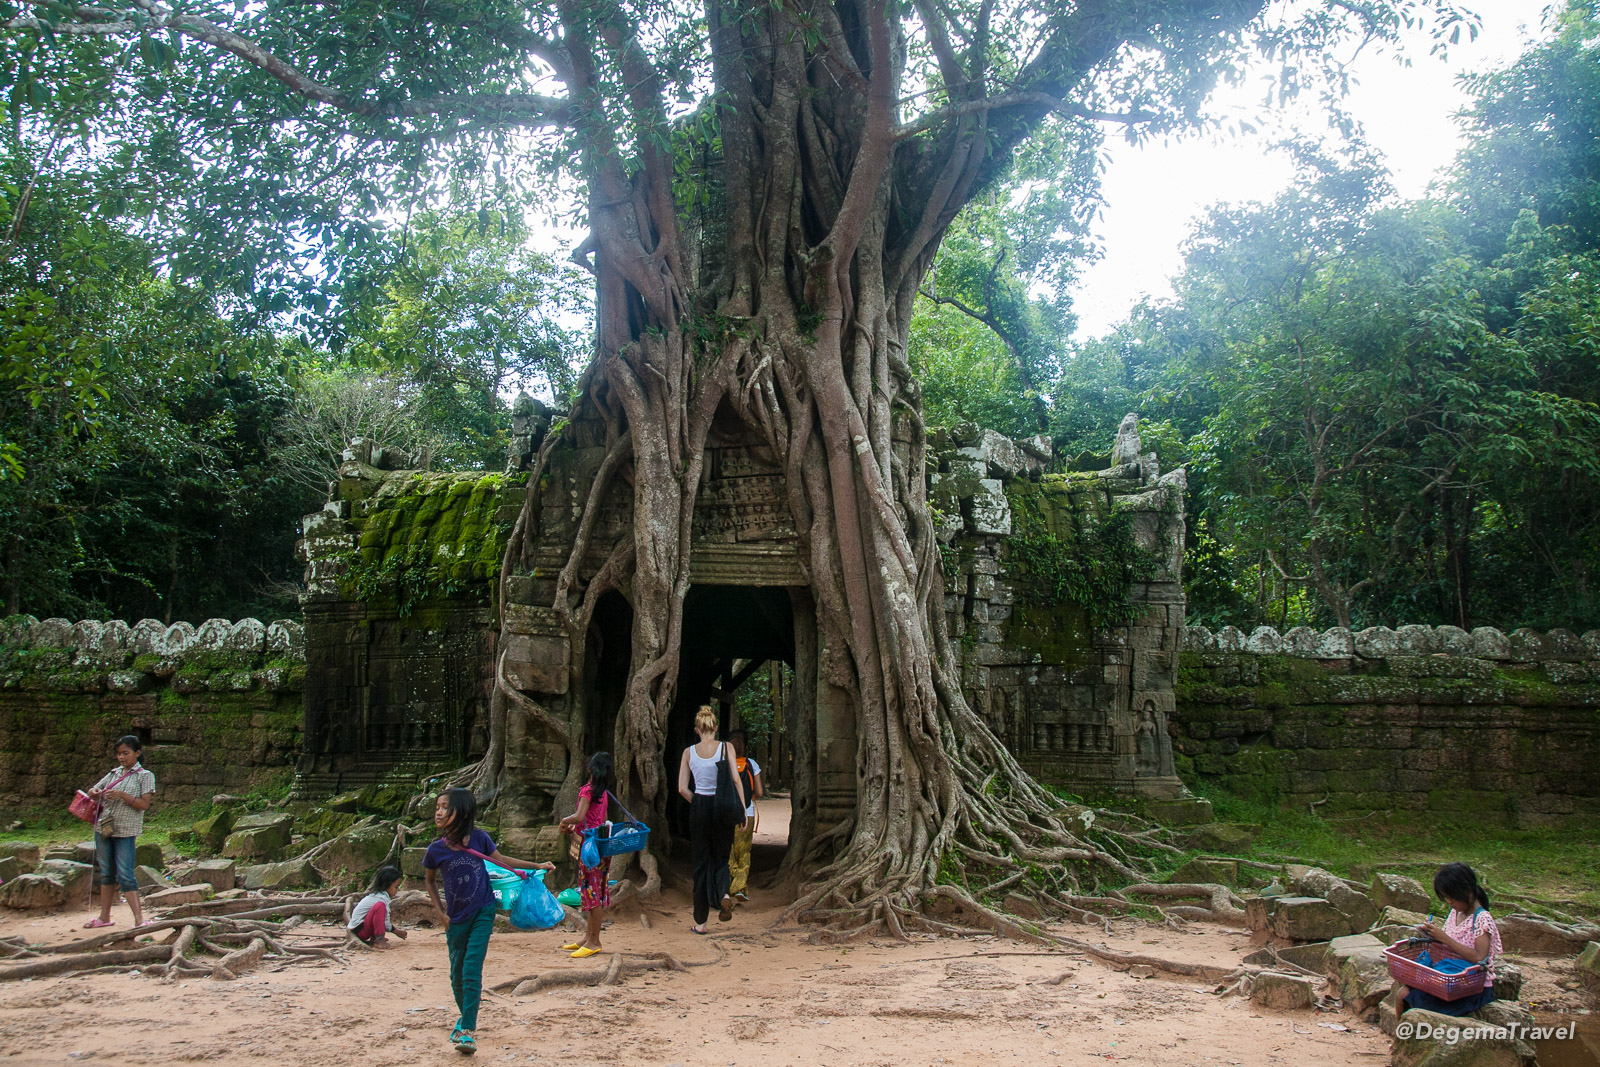 Overgrown temple in the Angkor Archaeological Park near Siem Reap, Cambodia